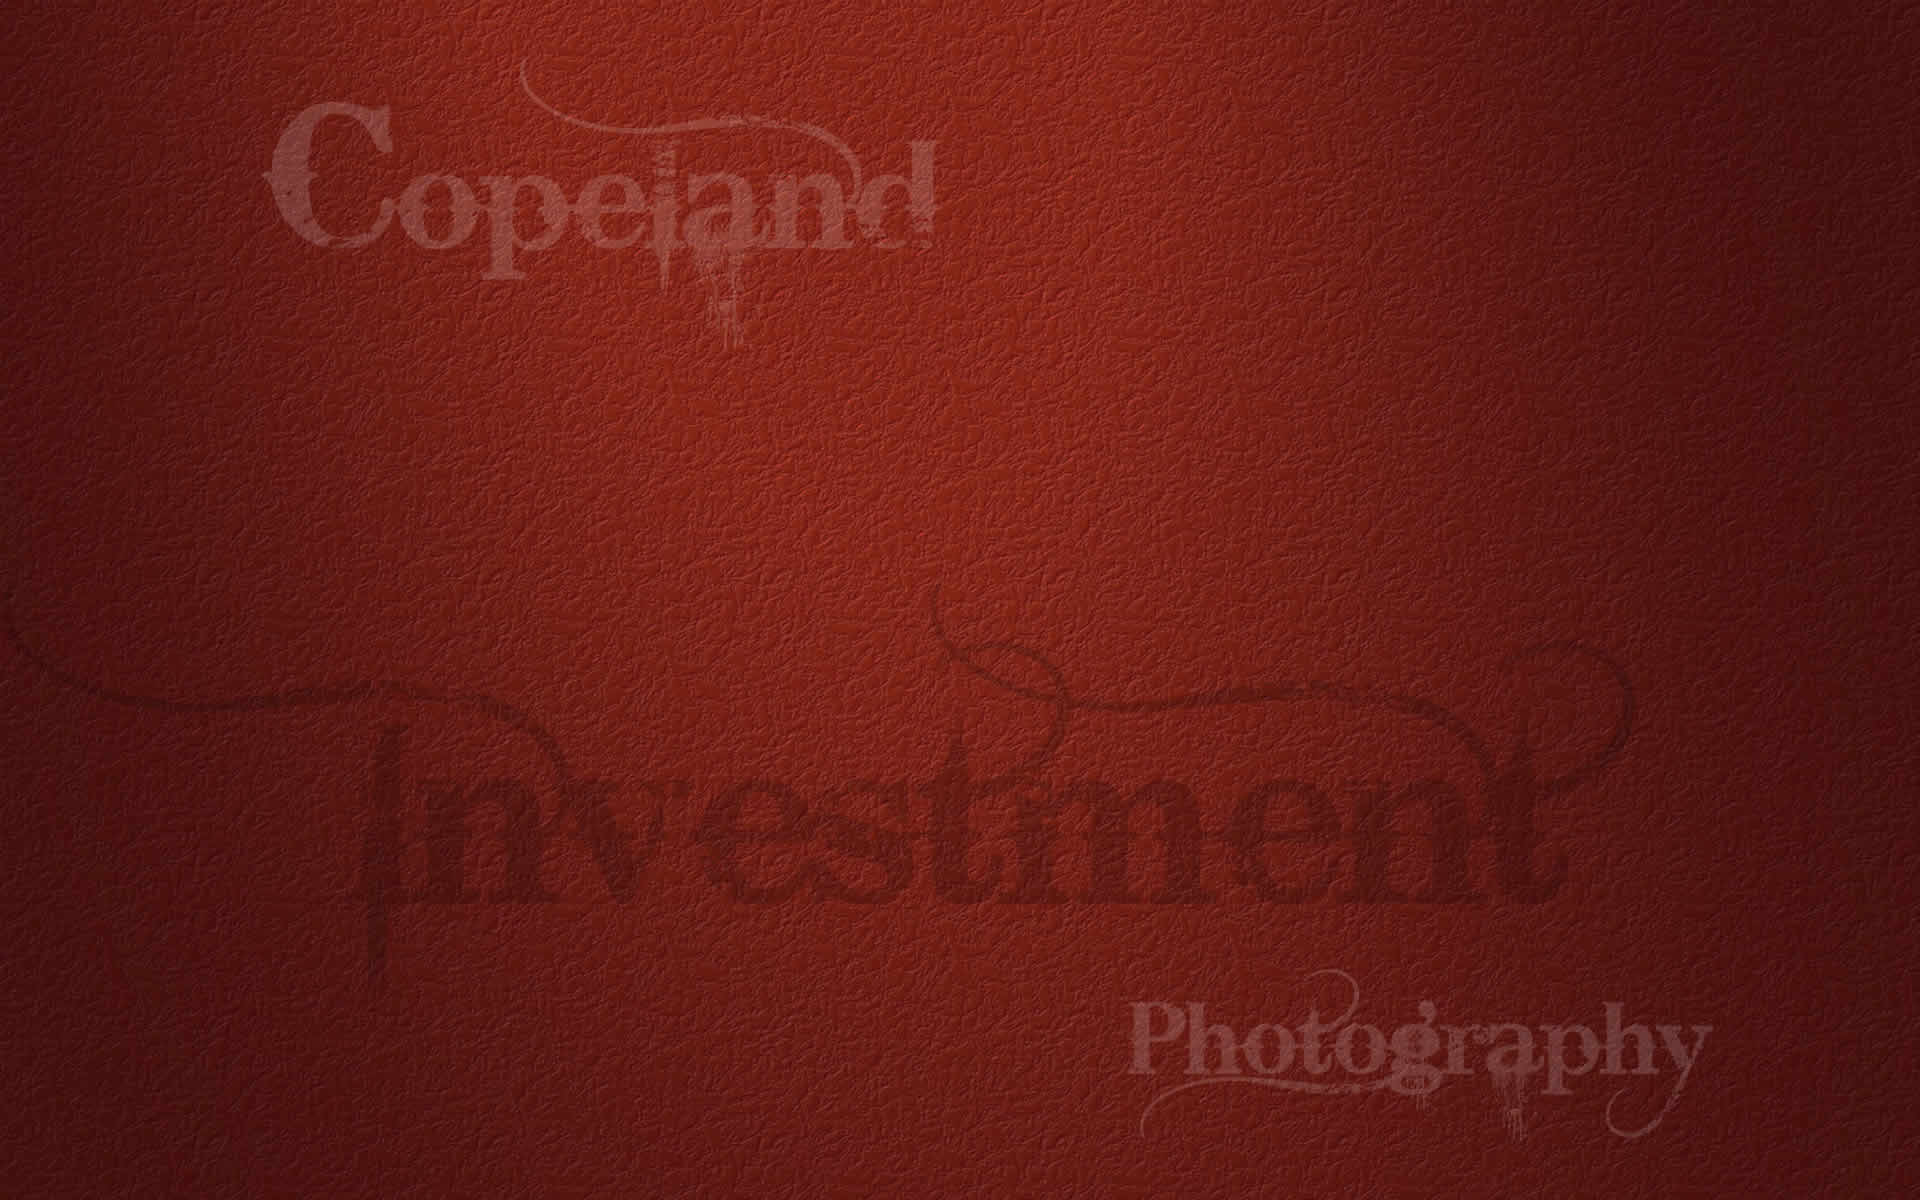 Copelands Investment, High School Seniors, Weddings, Studio Portrait Sessions